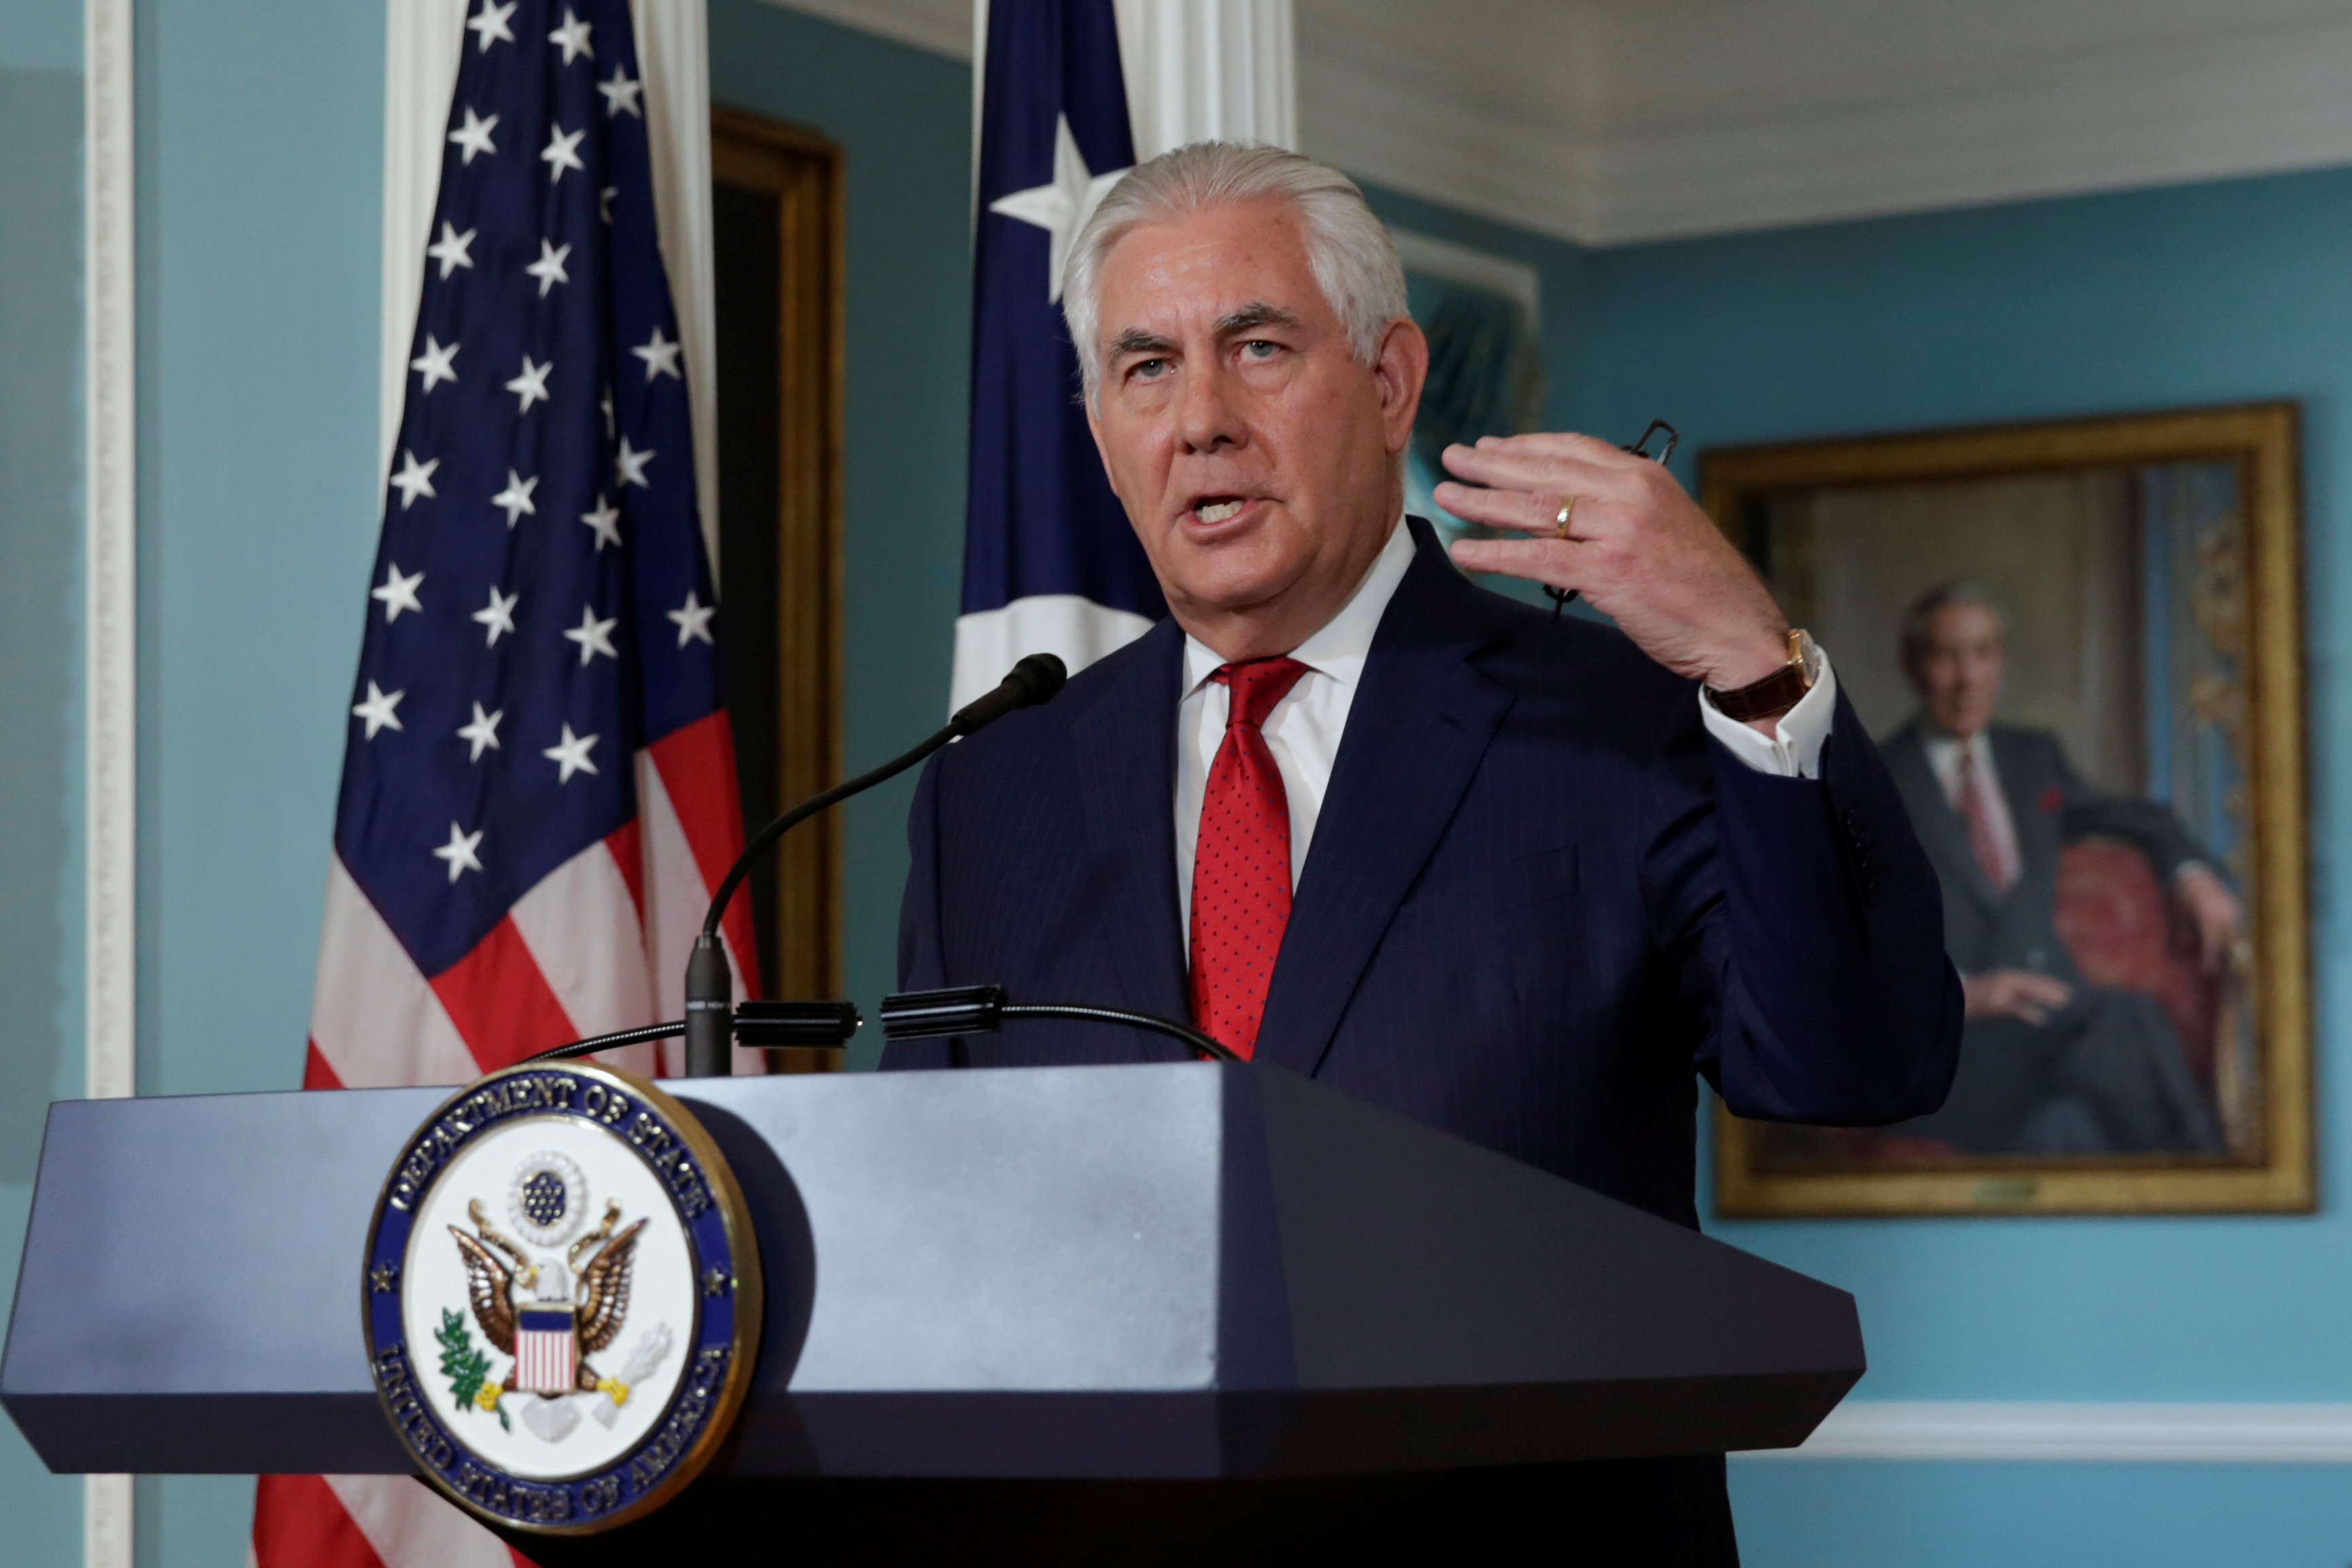 U.S. Secretary of State Rex Tillerson makes a statement to the media that he is not going to resign, at the State Department in Washington, U.S., October 4, 2017. REUTERS/Yuri Gripas